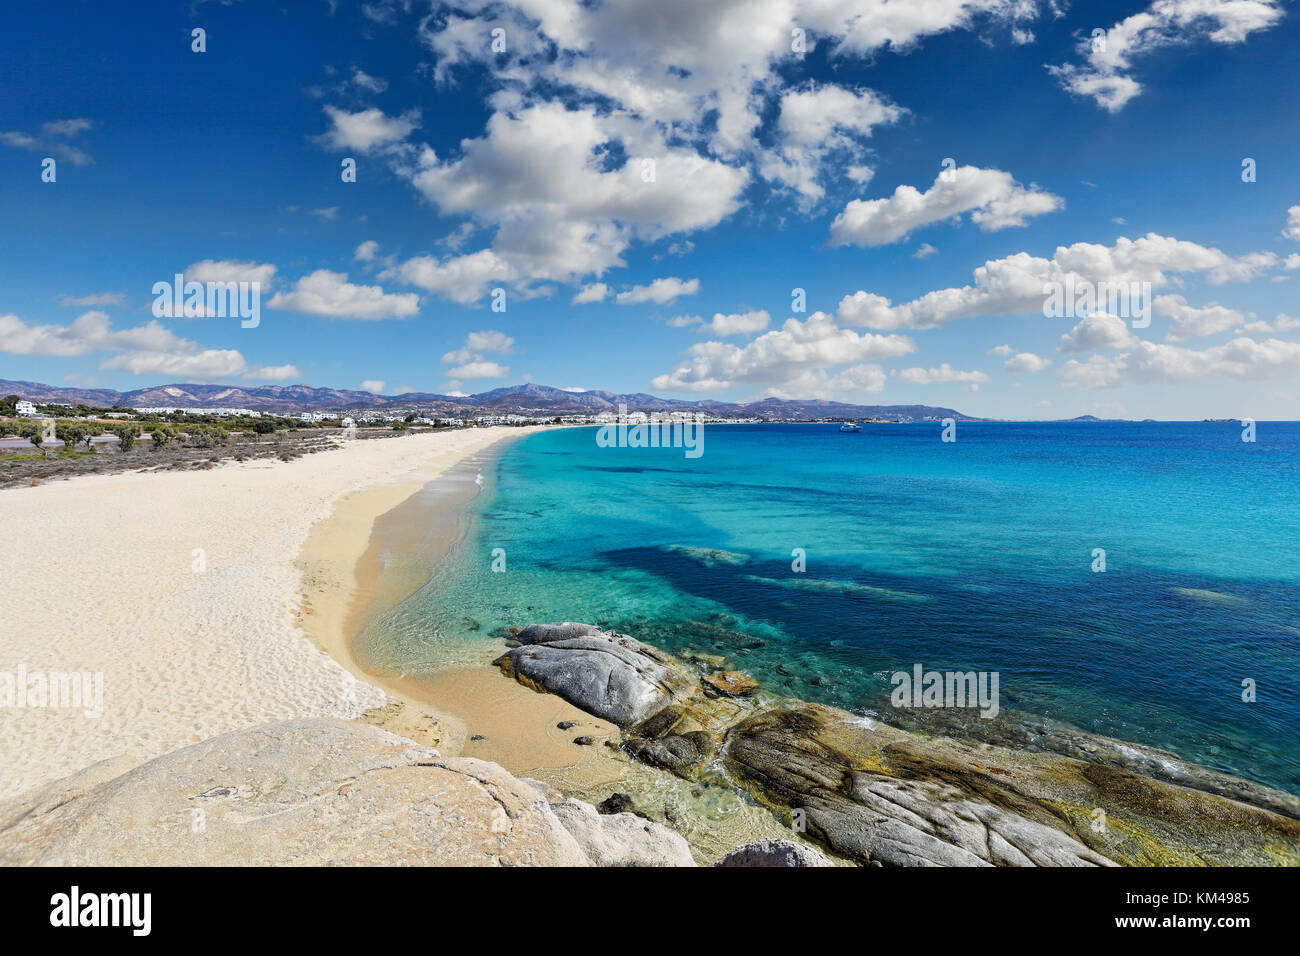 Agios Prokopios beach in Naxos island, Greece - Stock Image